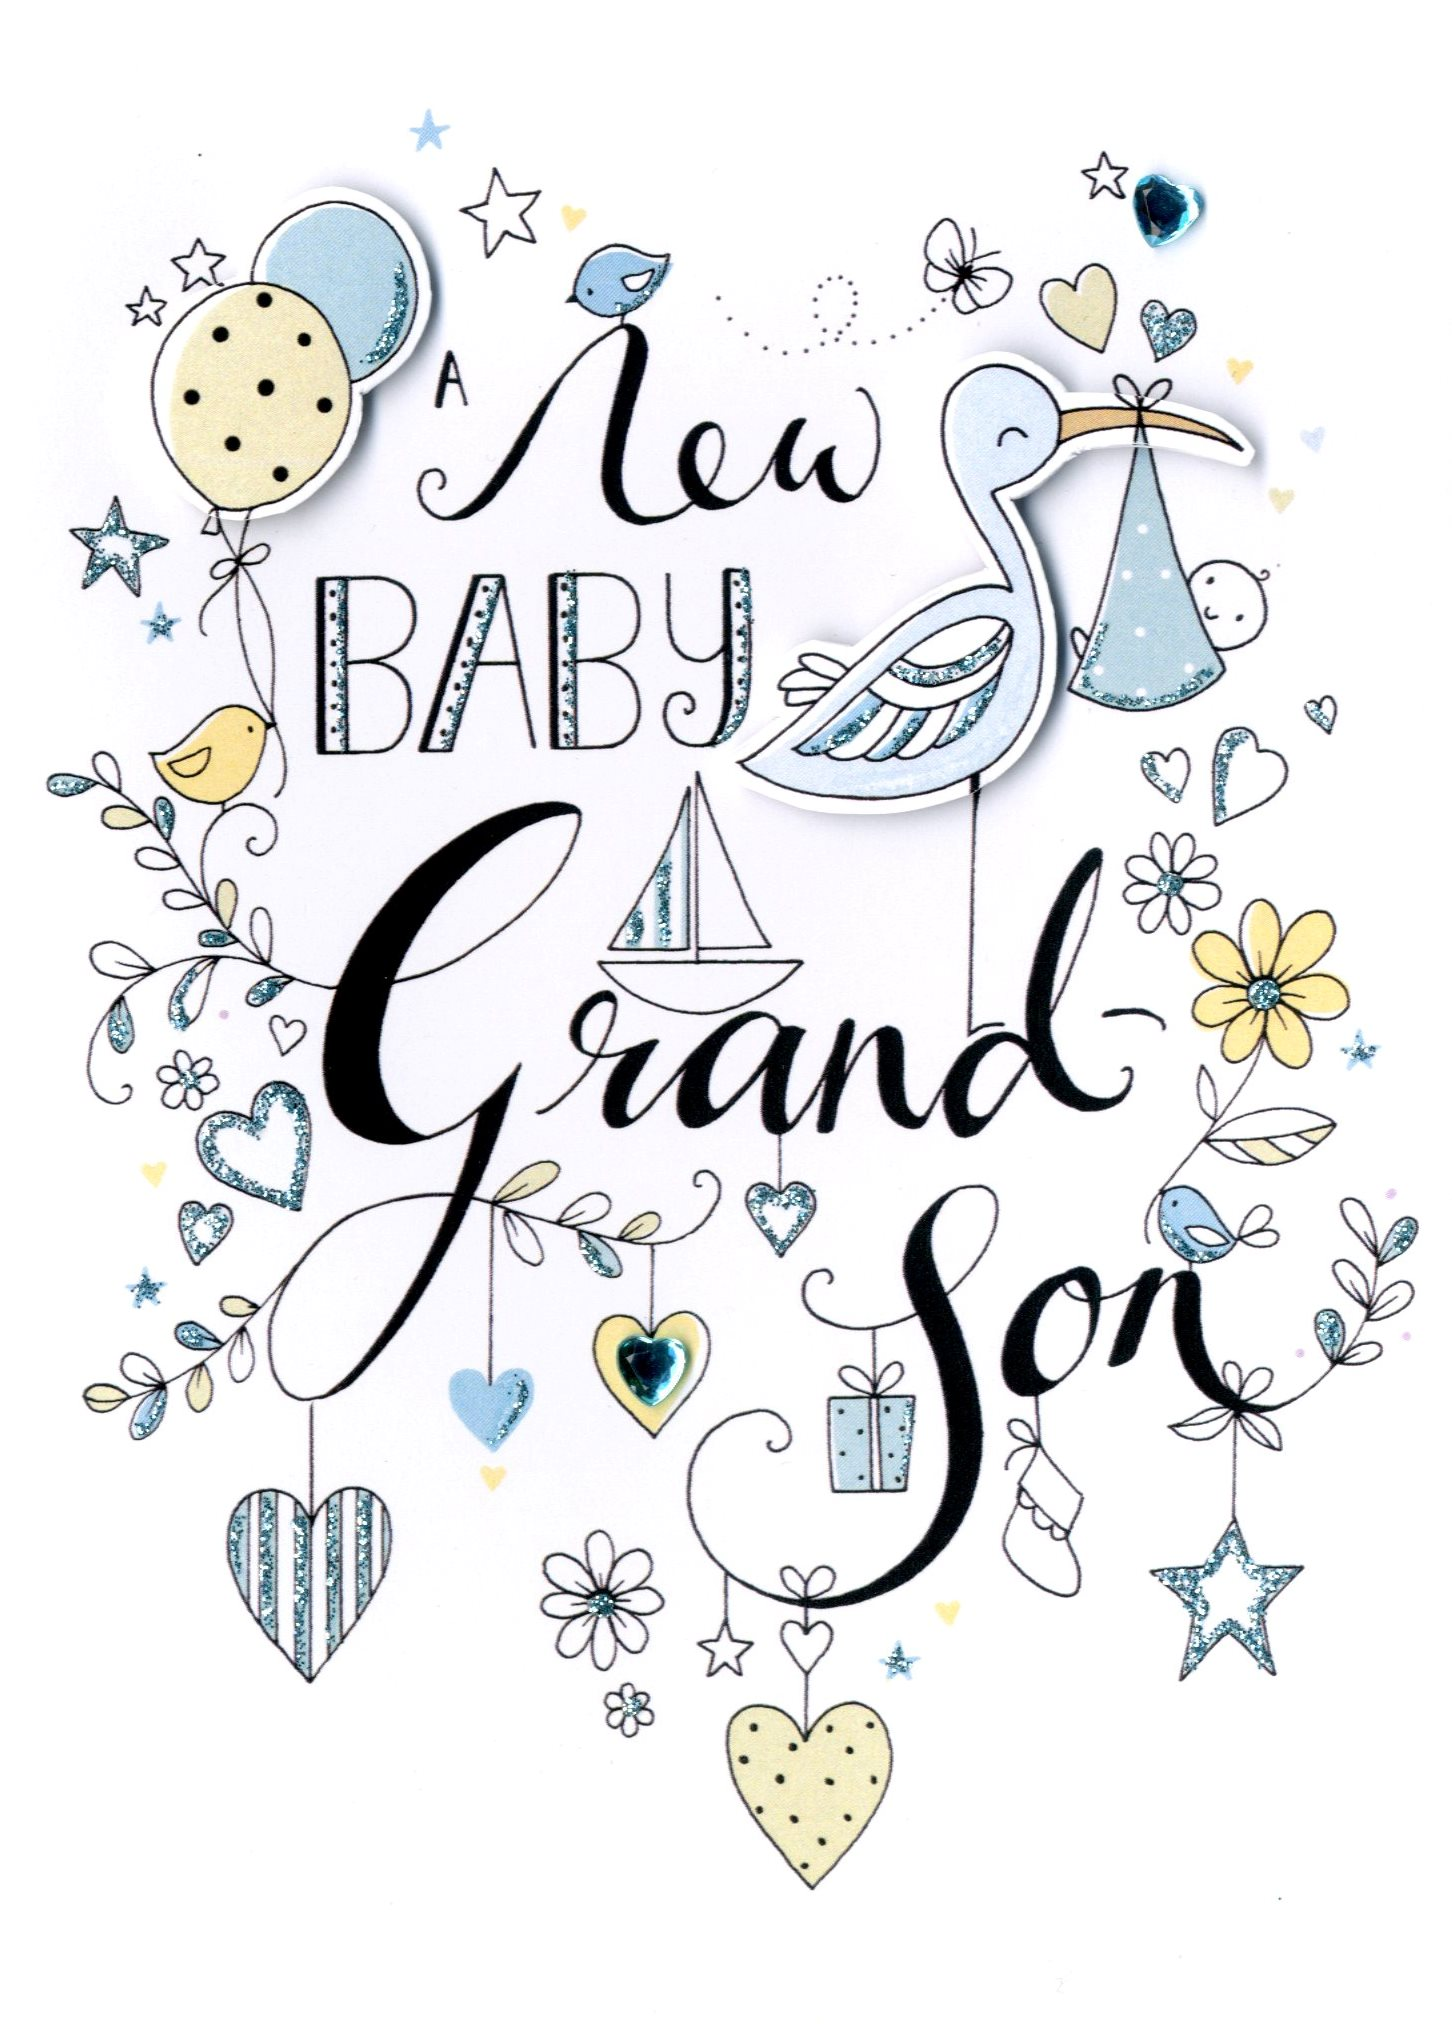 New baby grandson greeting card cards love kates new baby grandson greeting card m4hsunfo